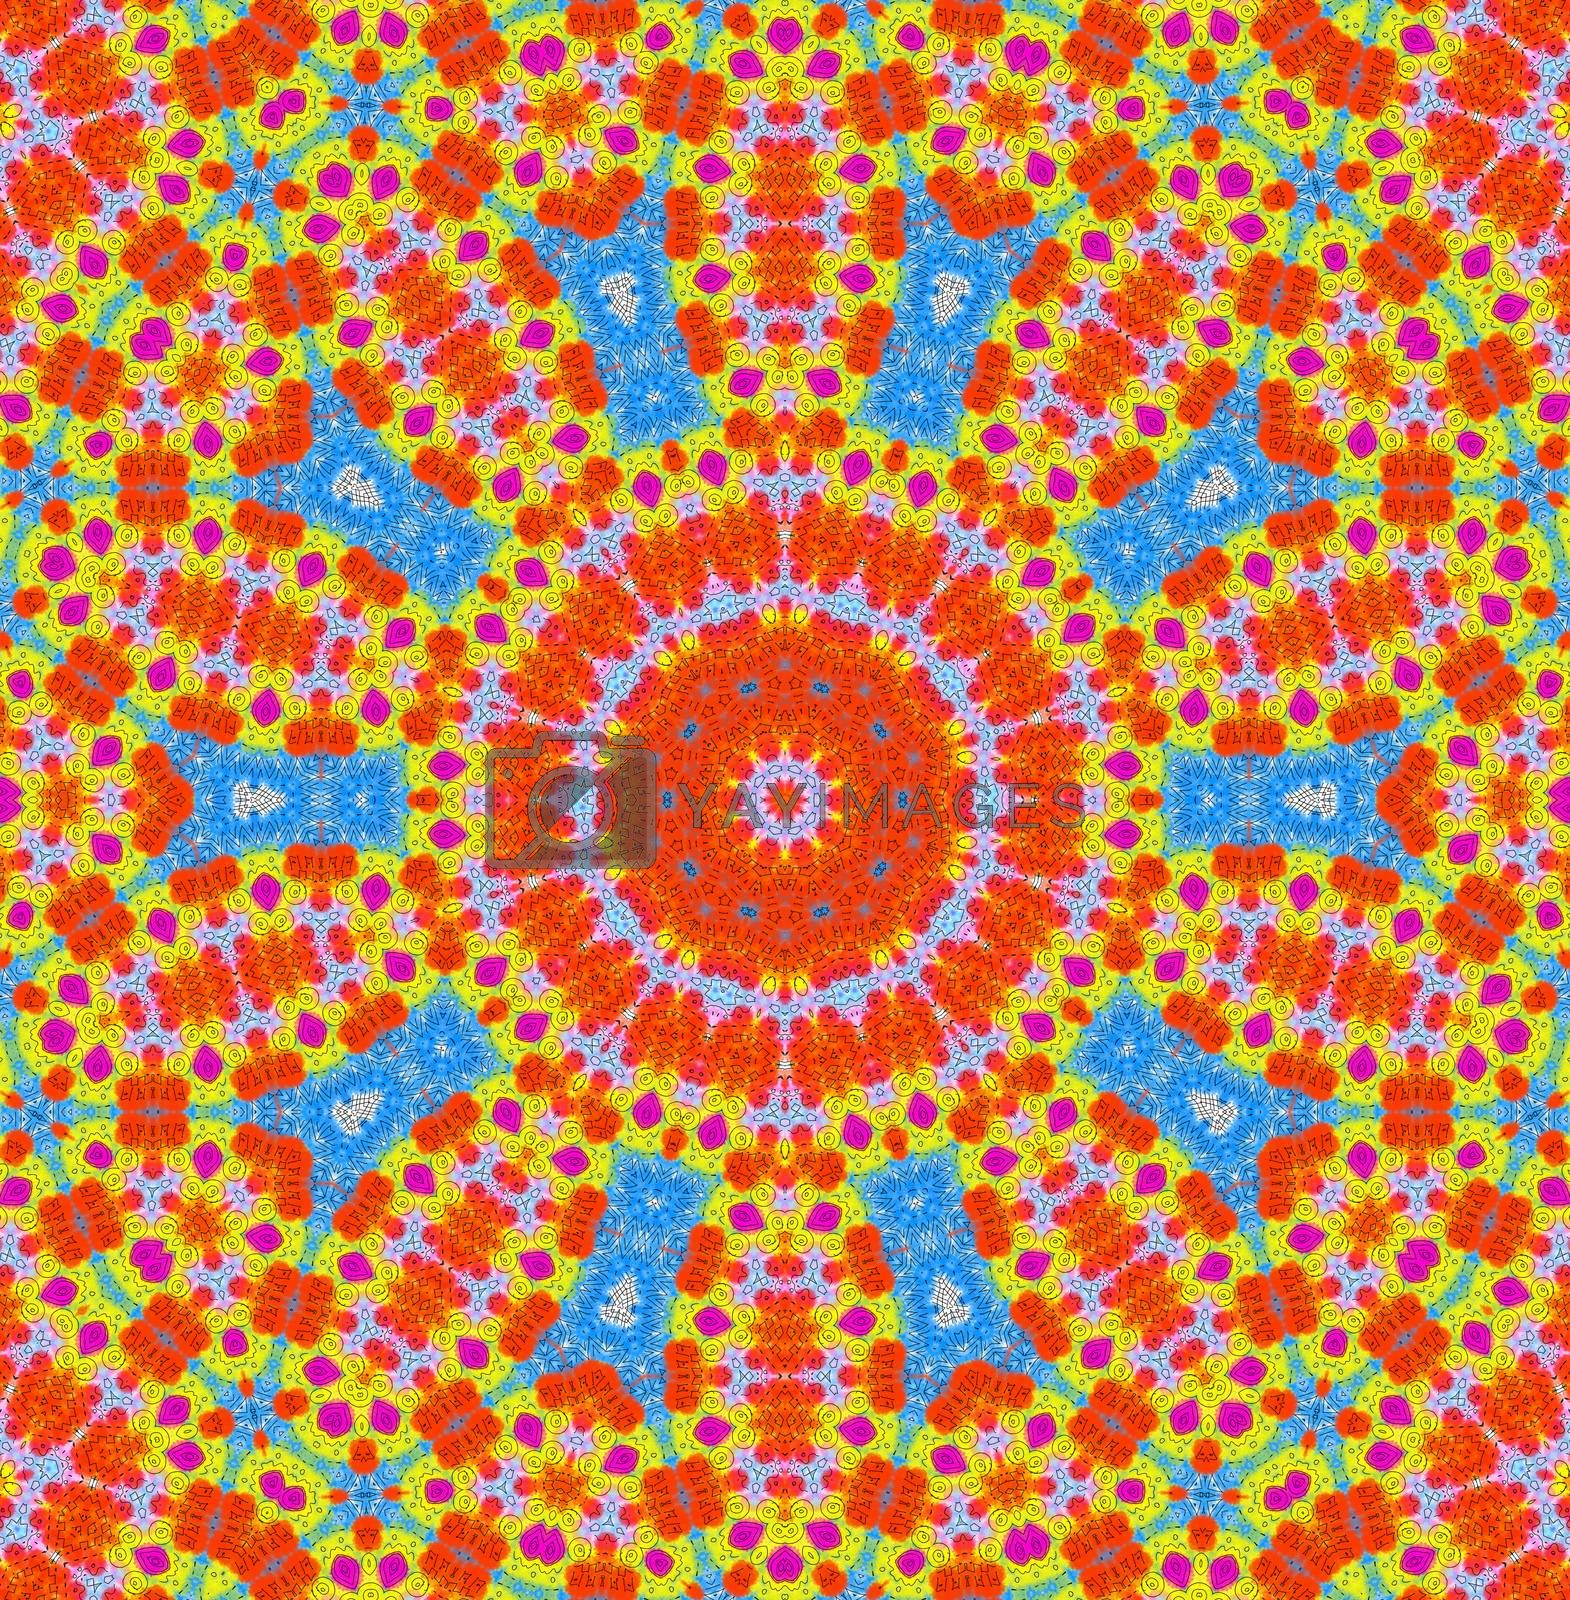 Abstract background with bright color concentric pattern